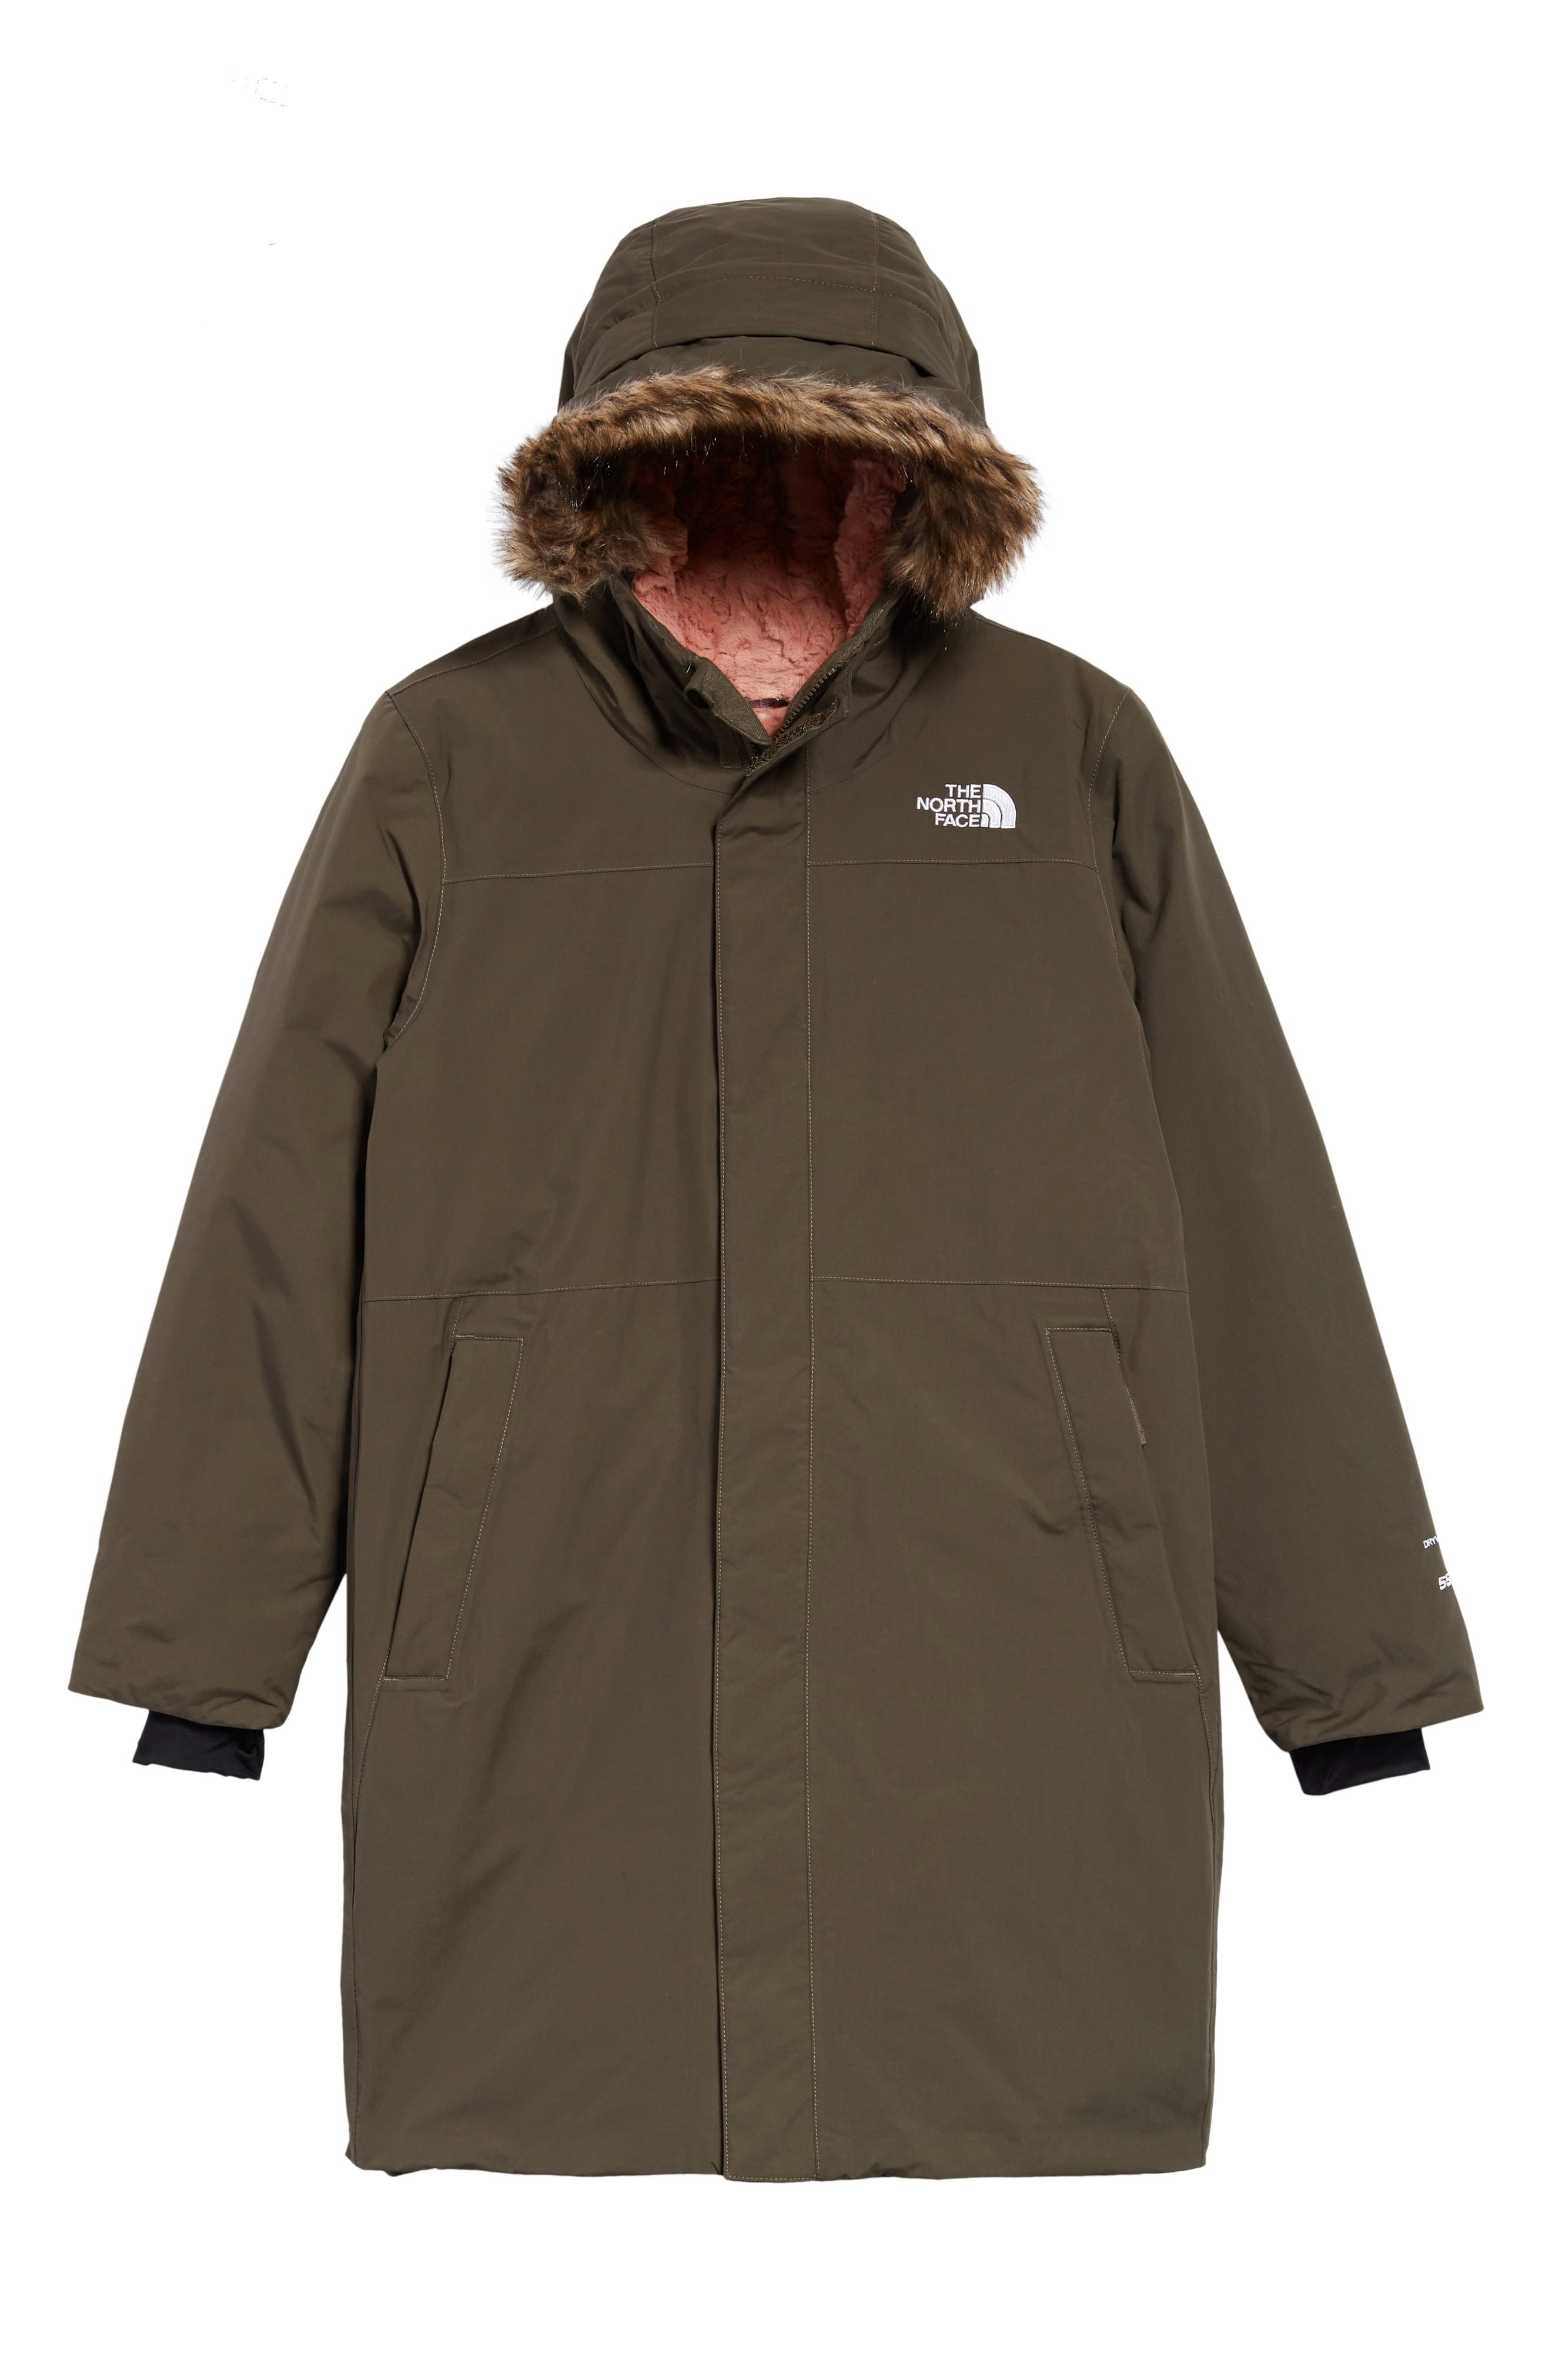 Image of The North Face Arctic Swirl Waterproof 550 Fill Power Down Parka